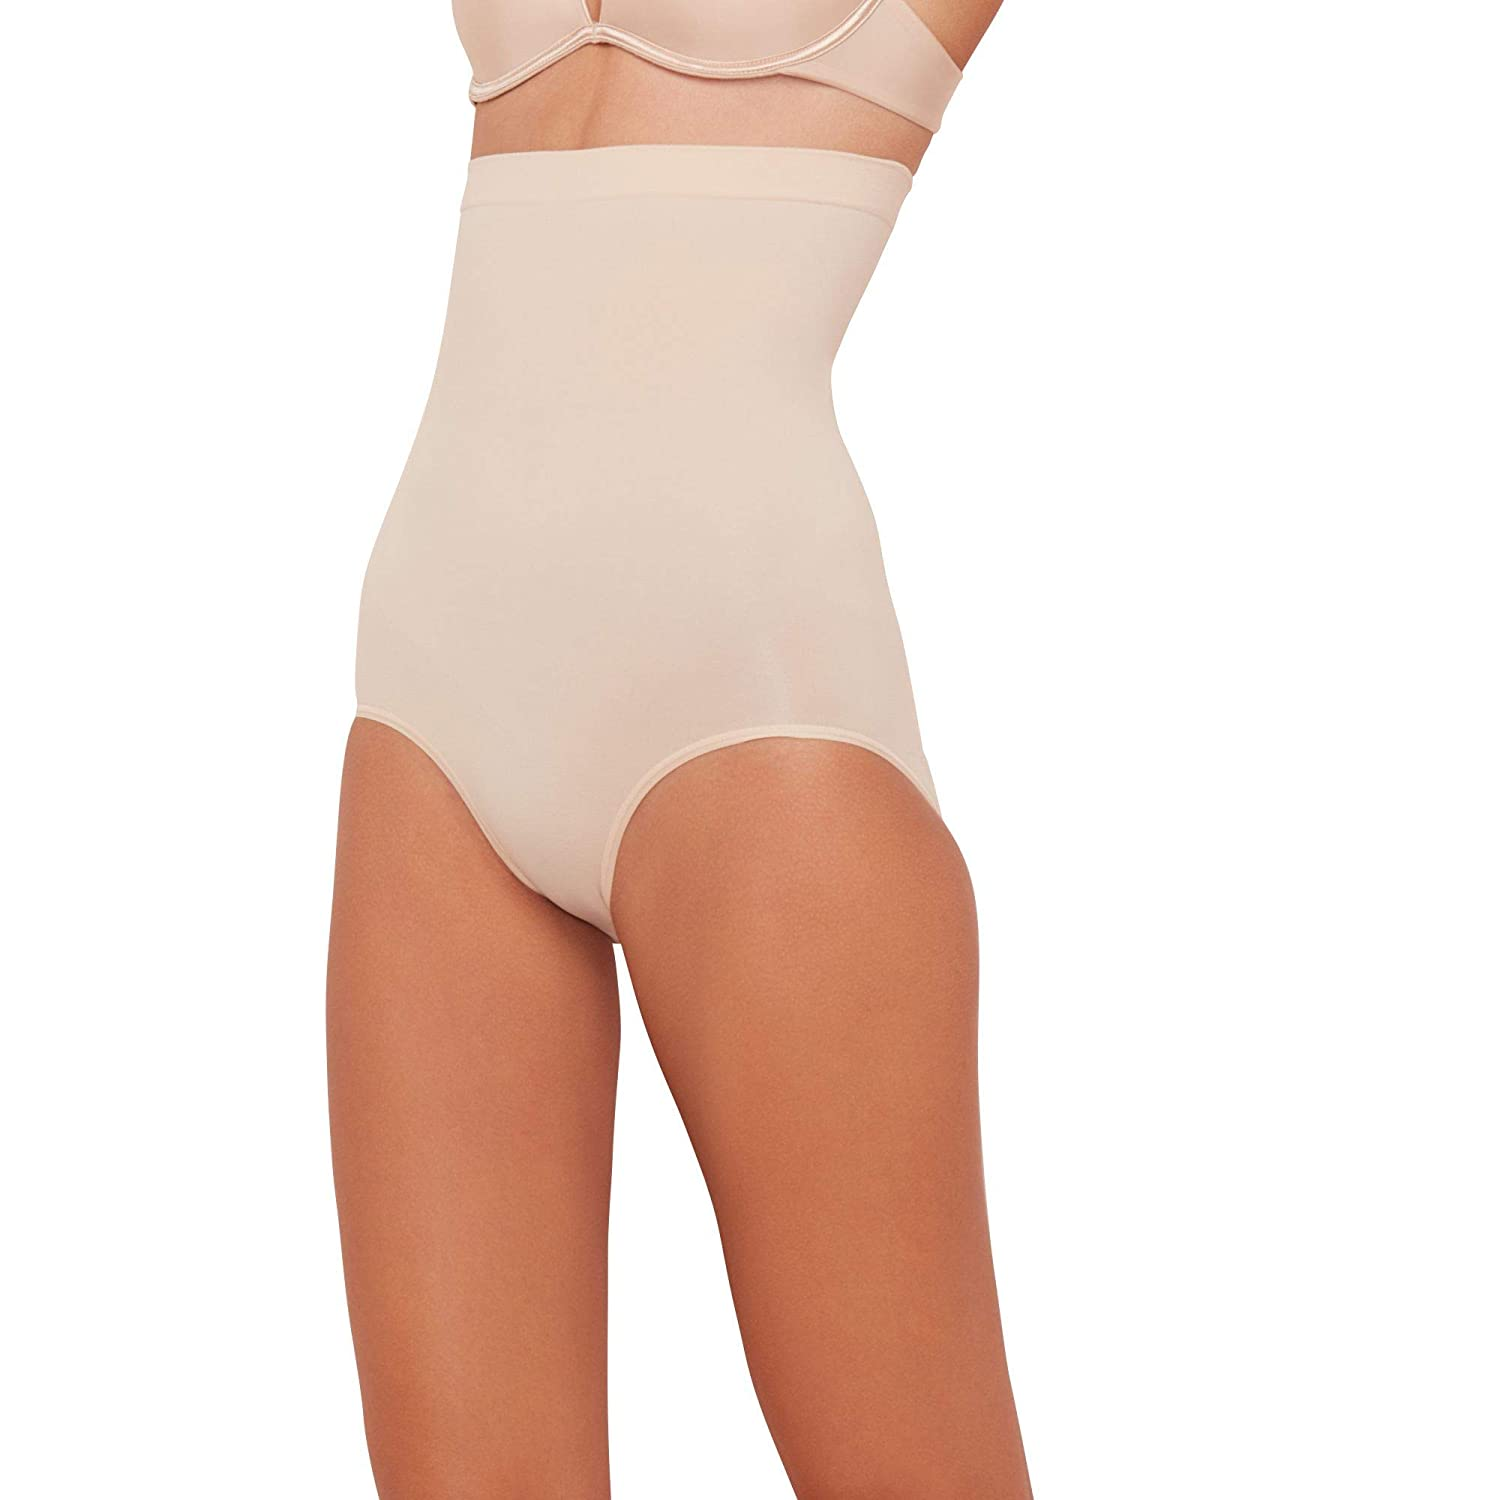 e8caecf537f23 Spanx Womens Nude  Power Series  High-Waisted Briefs  Spanx  Amazon.co.uk   Clothing